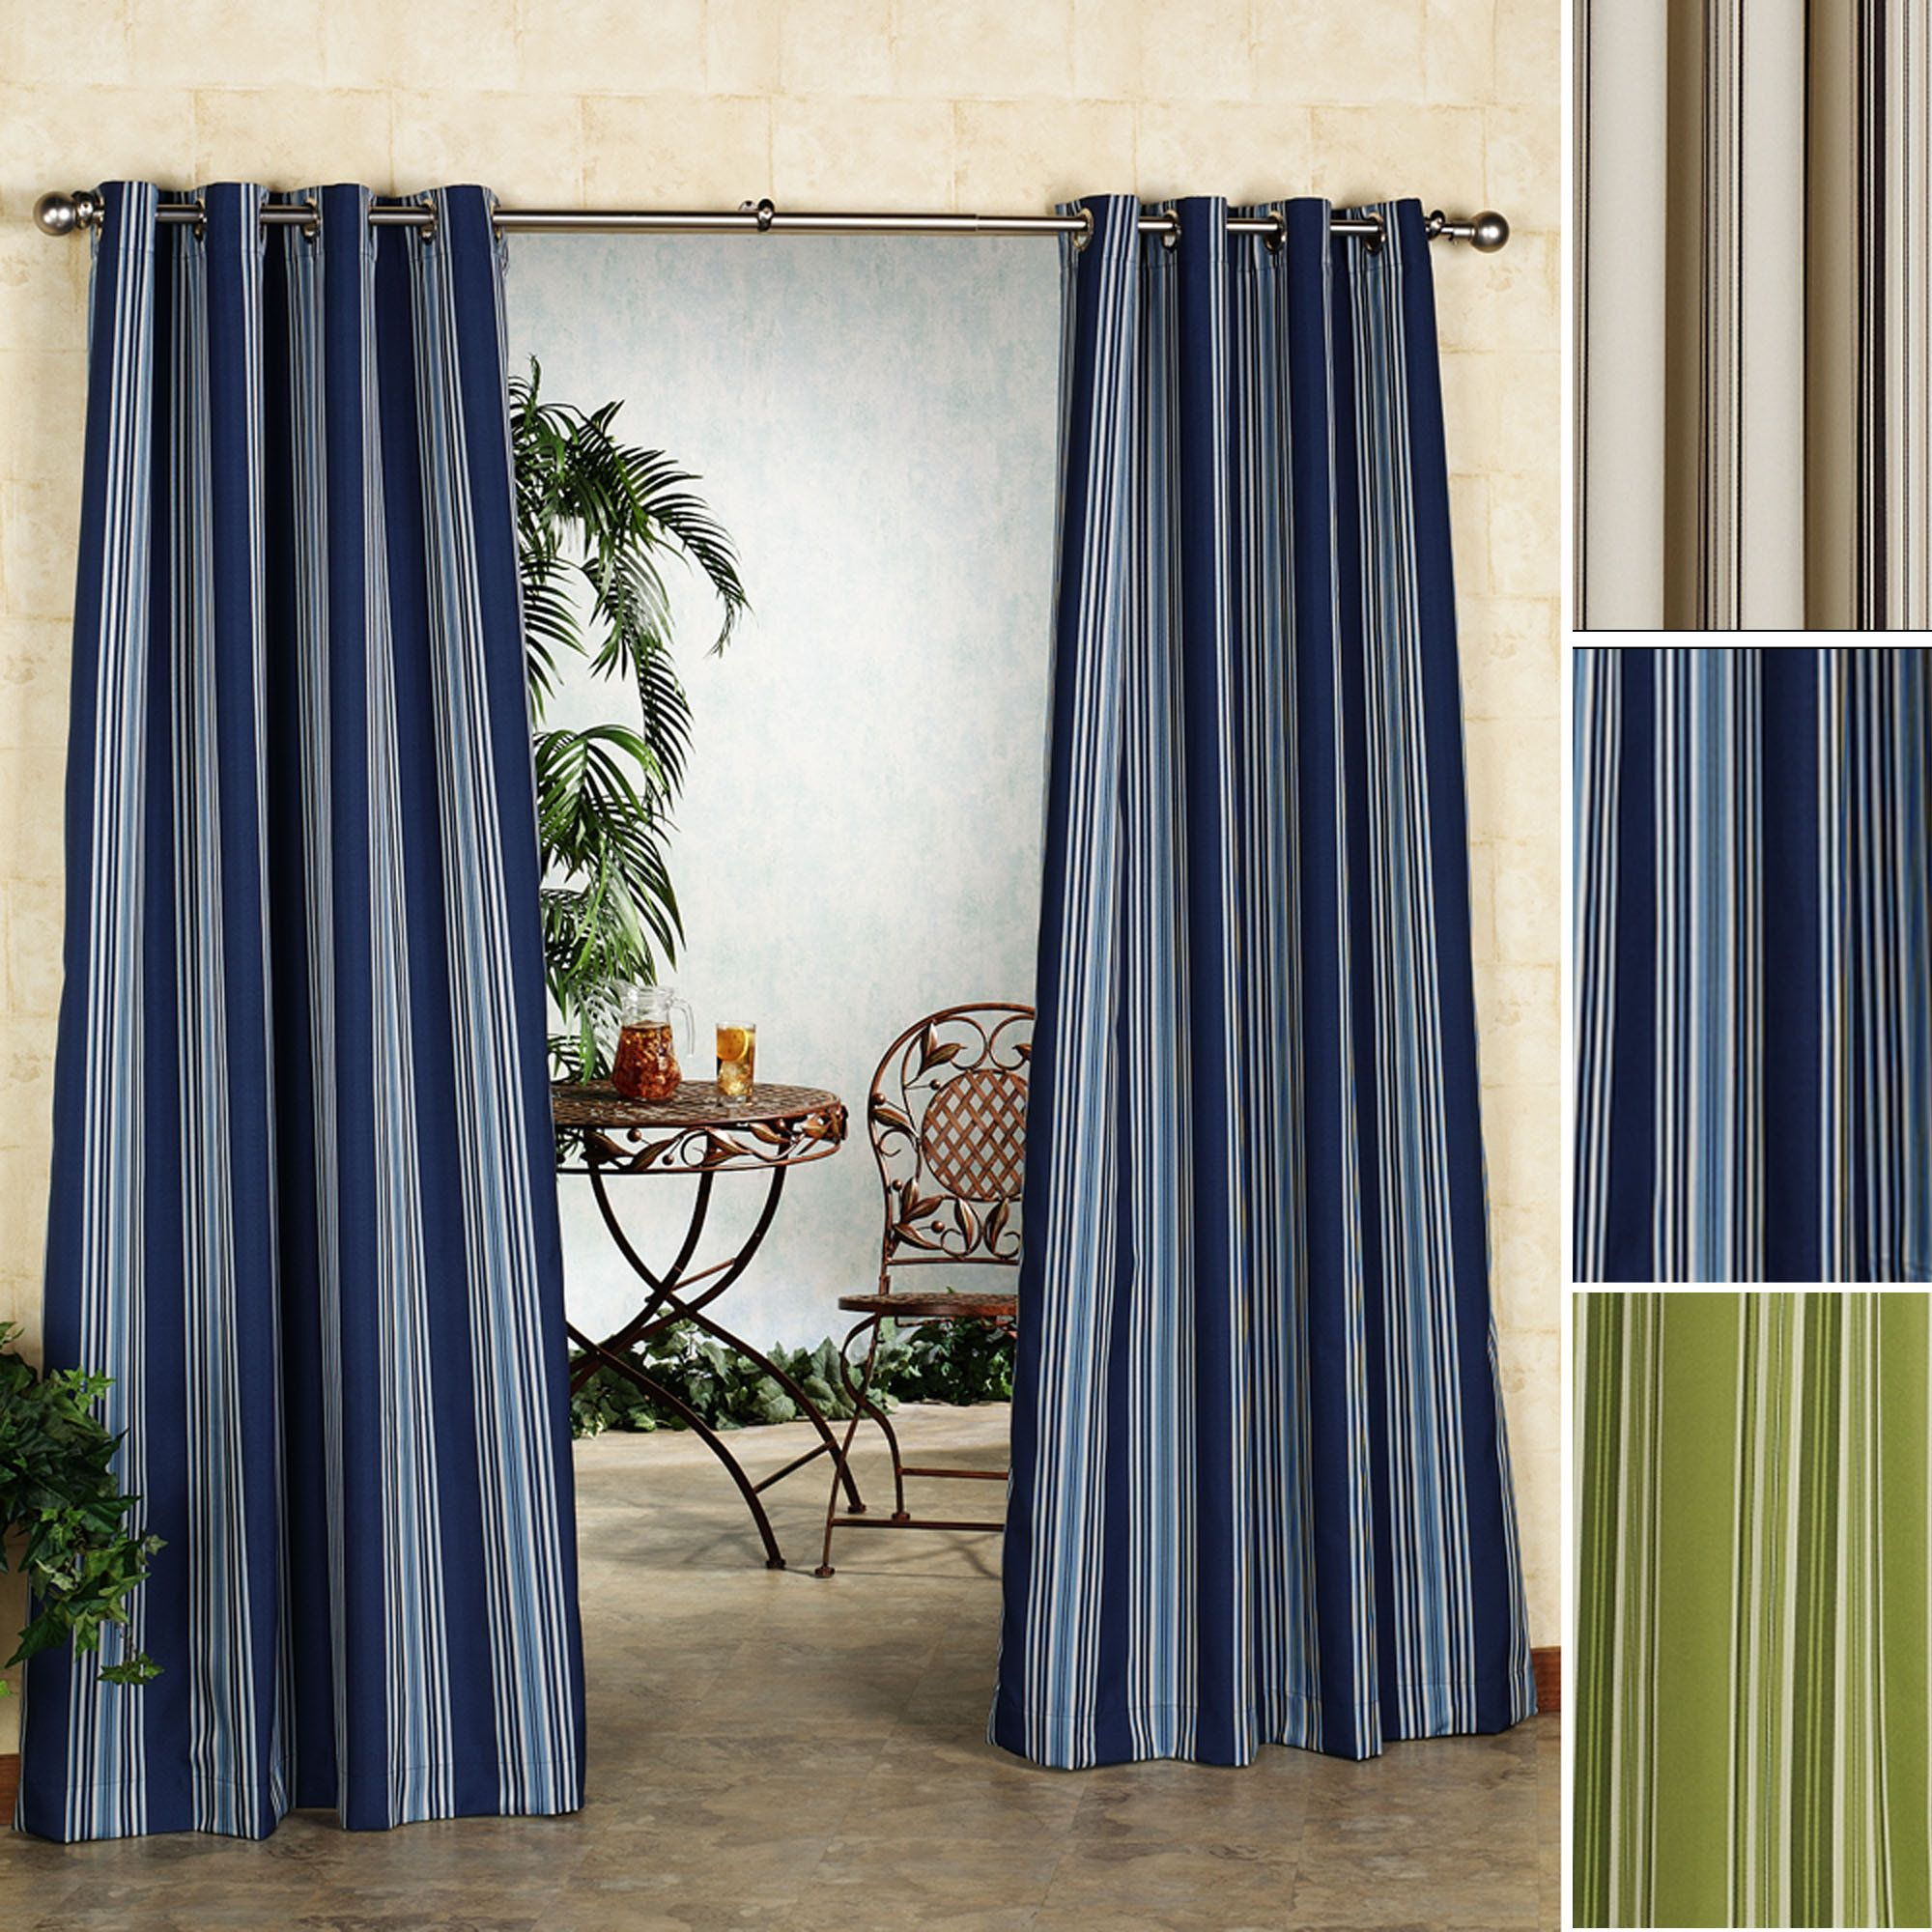 Illustration of Indoor Outdoor Curtains Displaying Beautiful